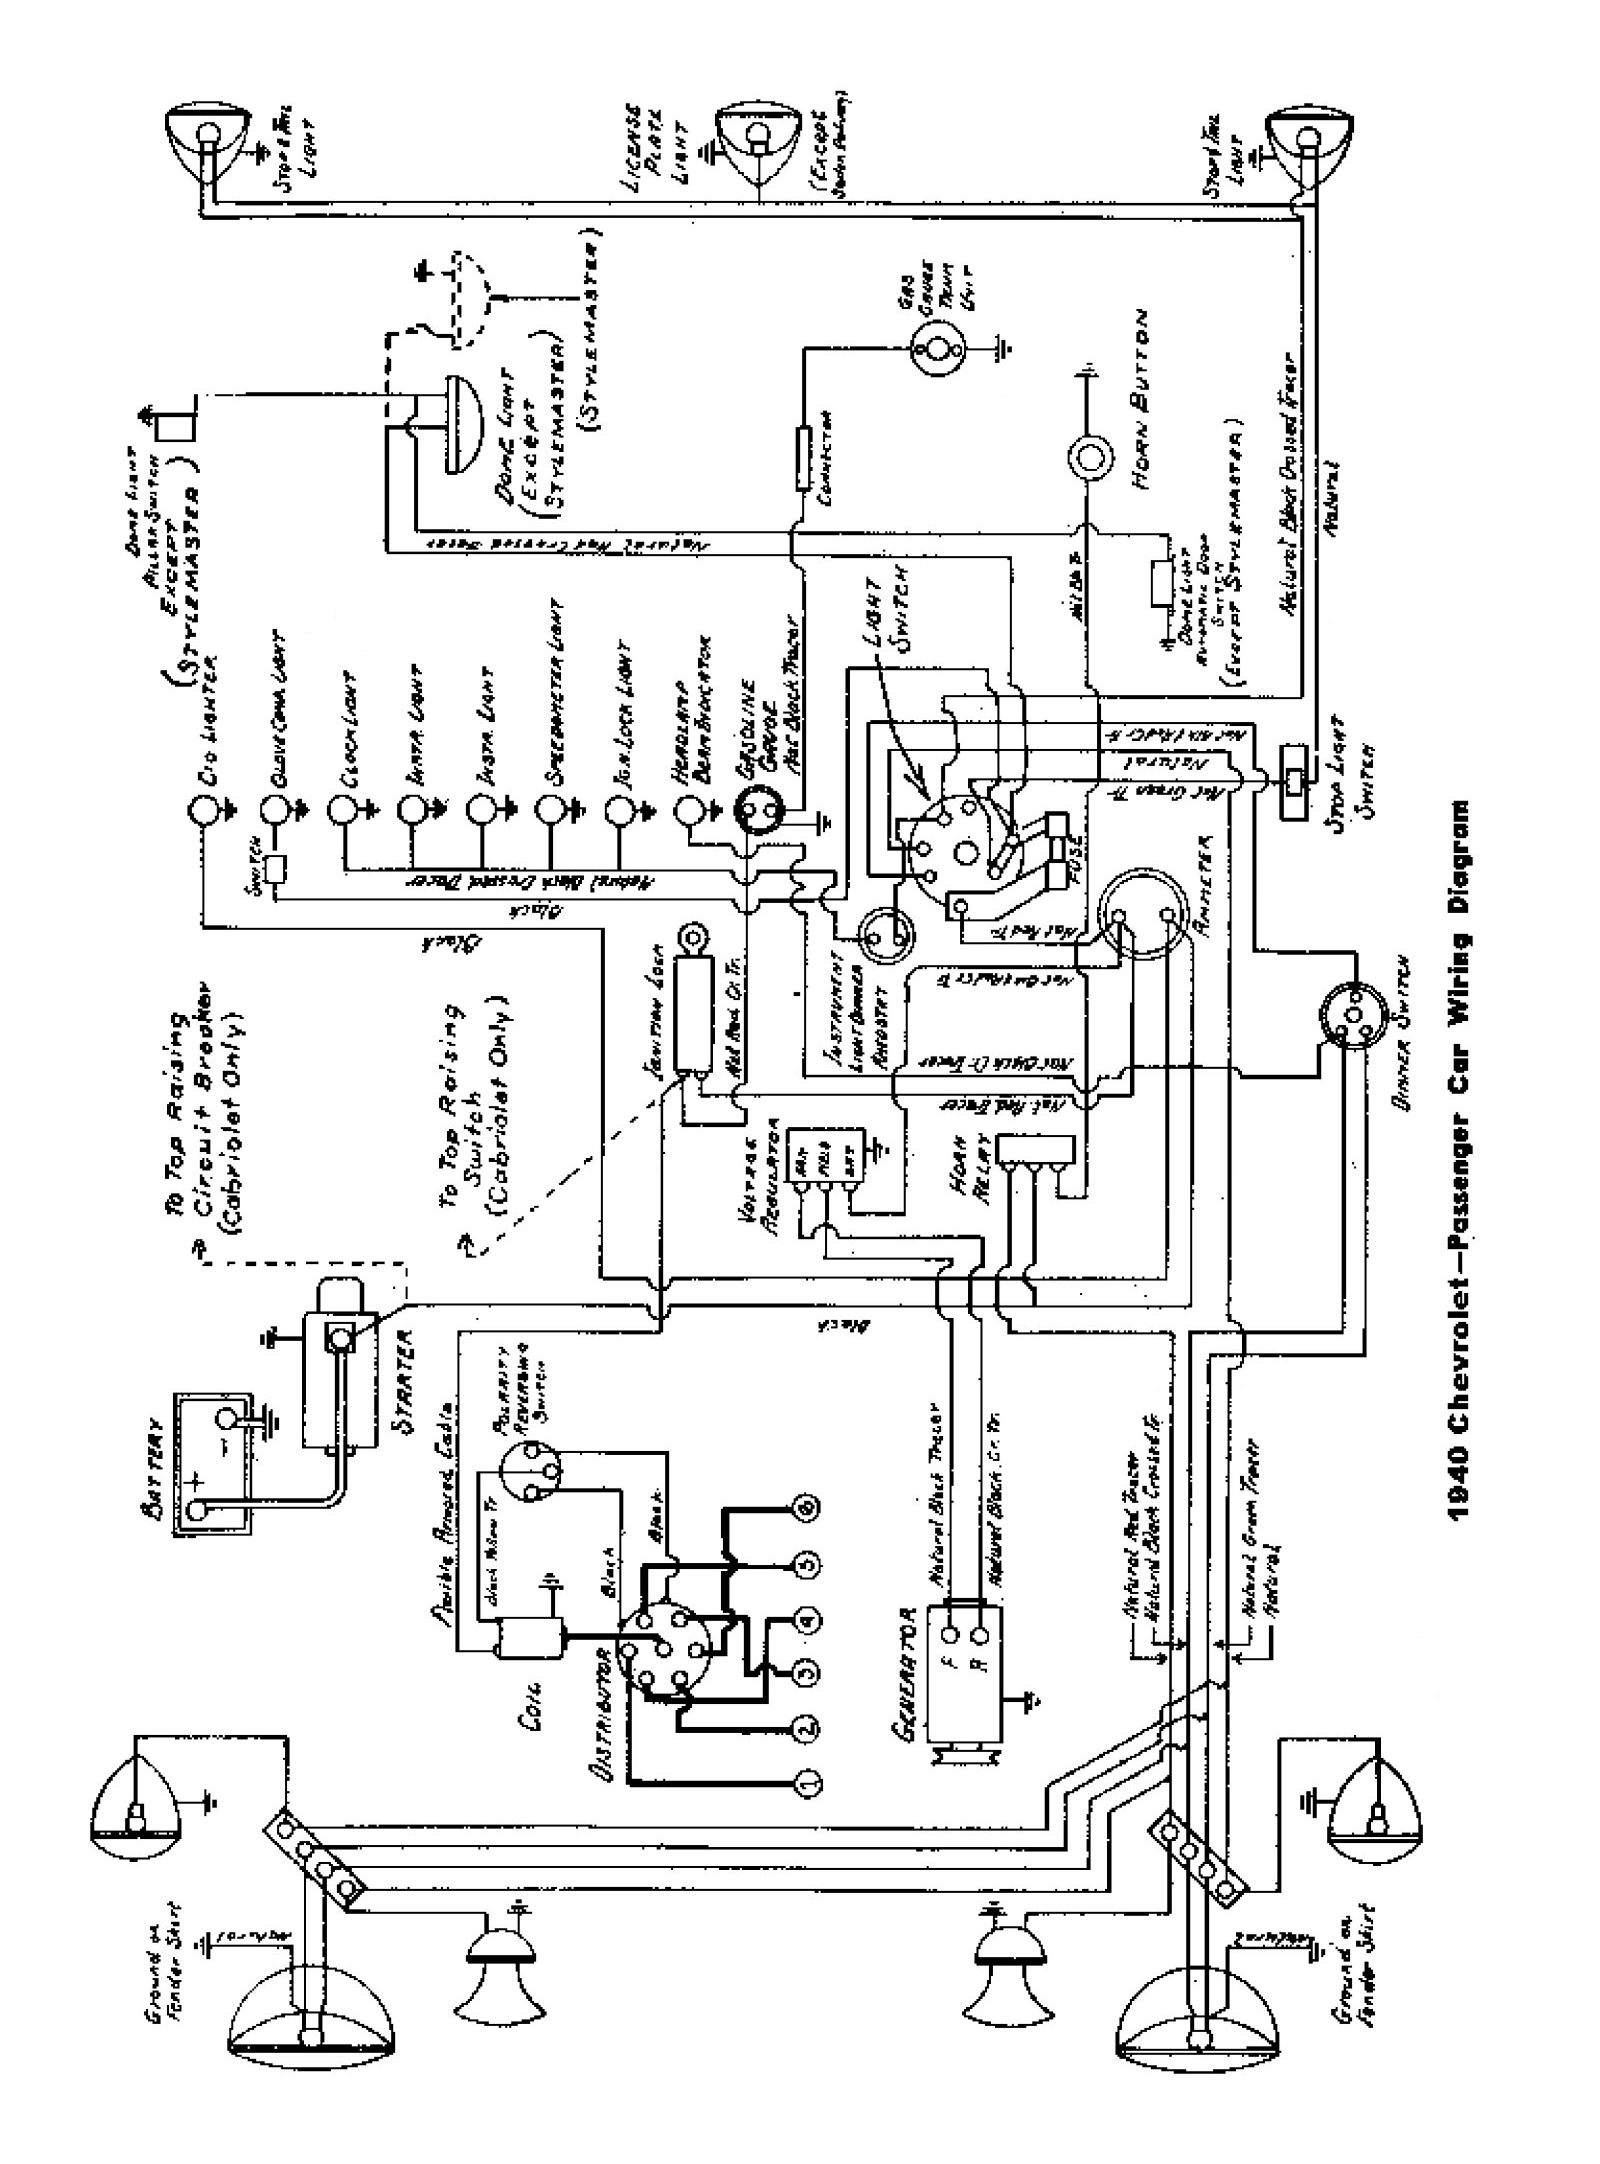 chevy wiring diagrams rh chevy oldcarmanualproject com 54 Chevy Truck Wiring Diagram 89 Chevy Truck Wiring Diagram